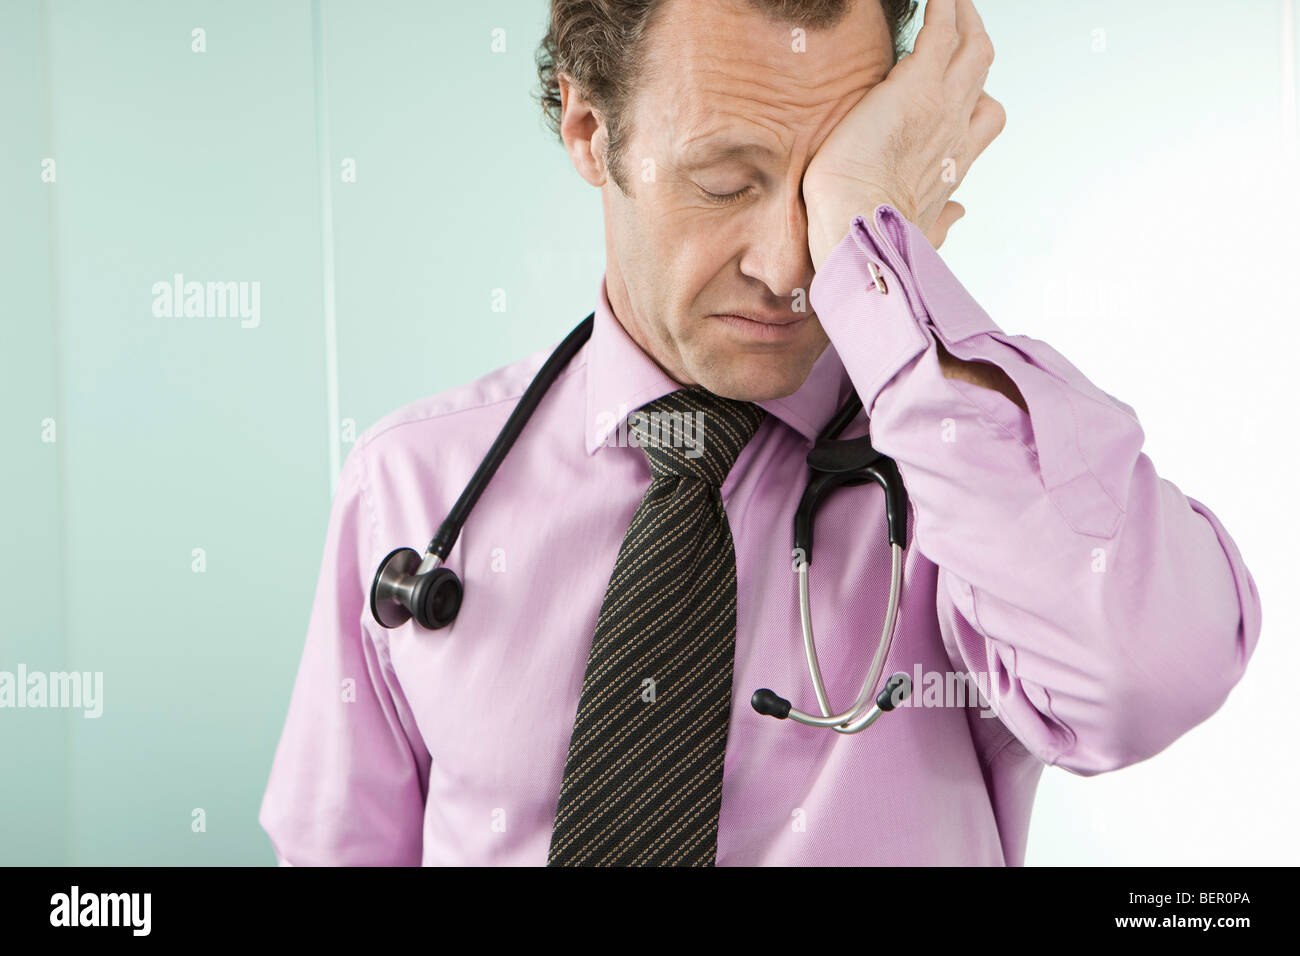 A tired doctor rubbing his eyes - Stock Image